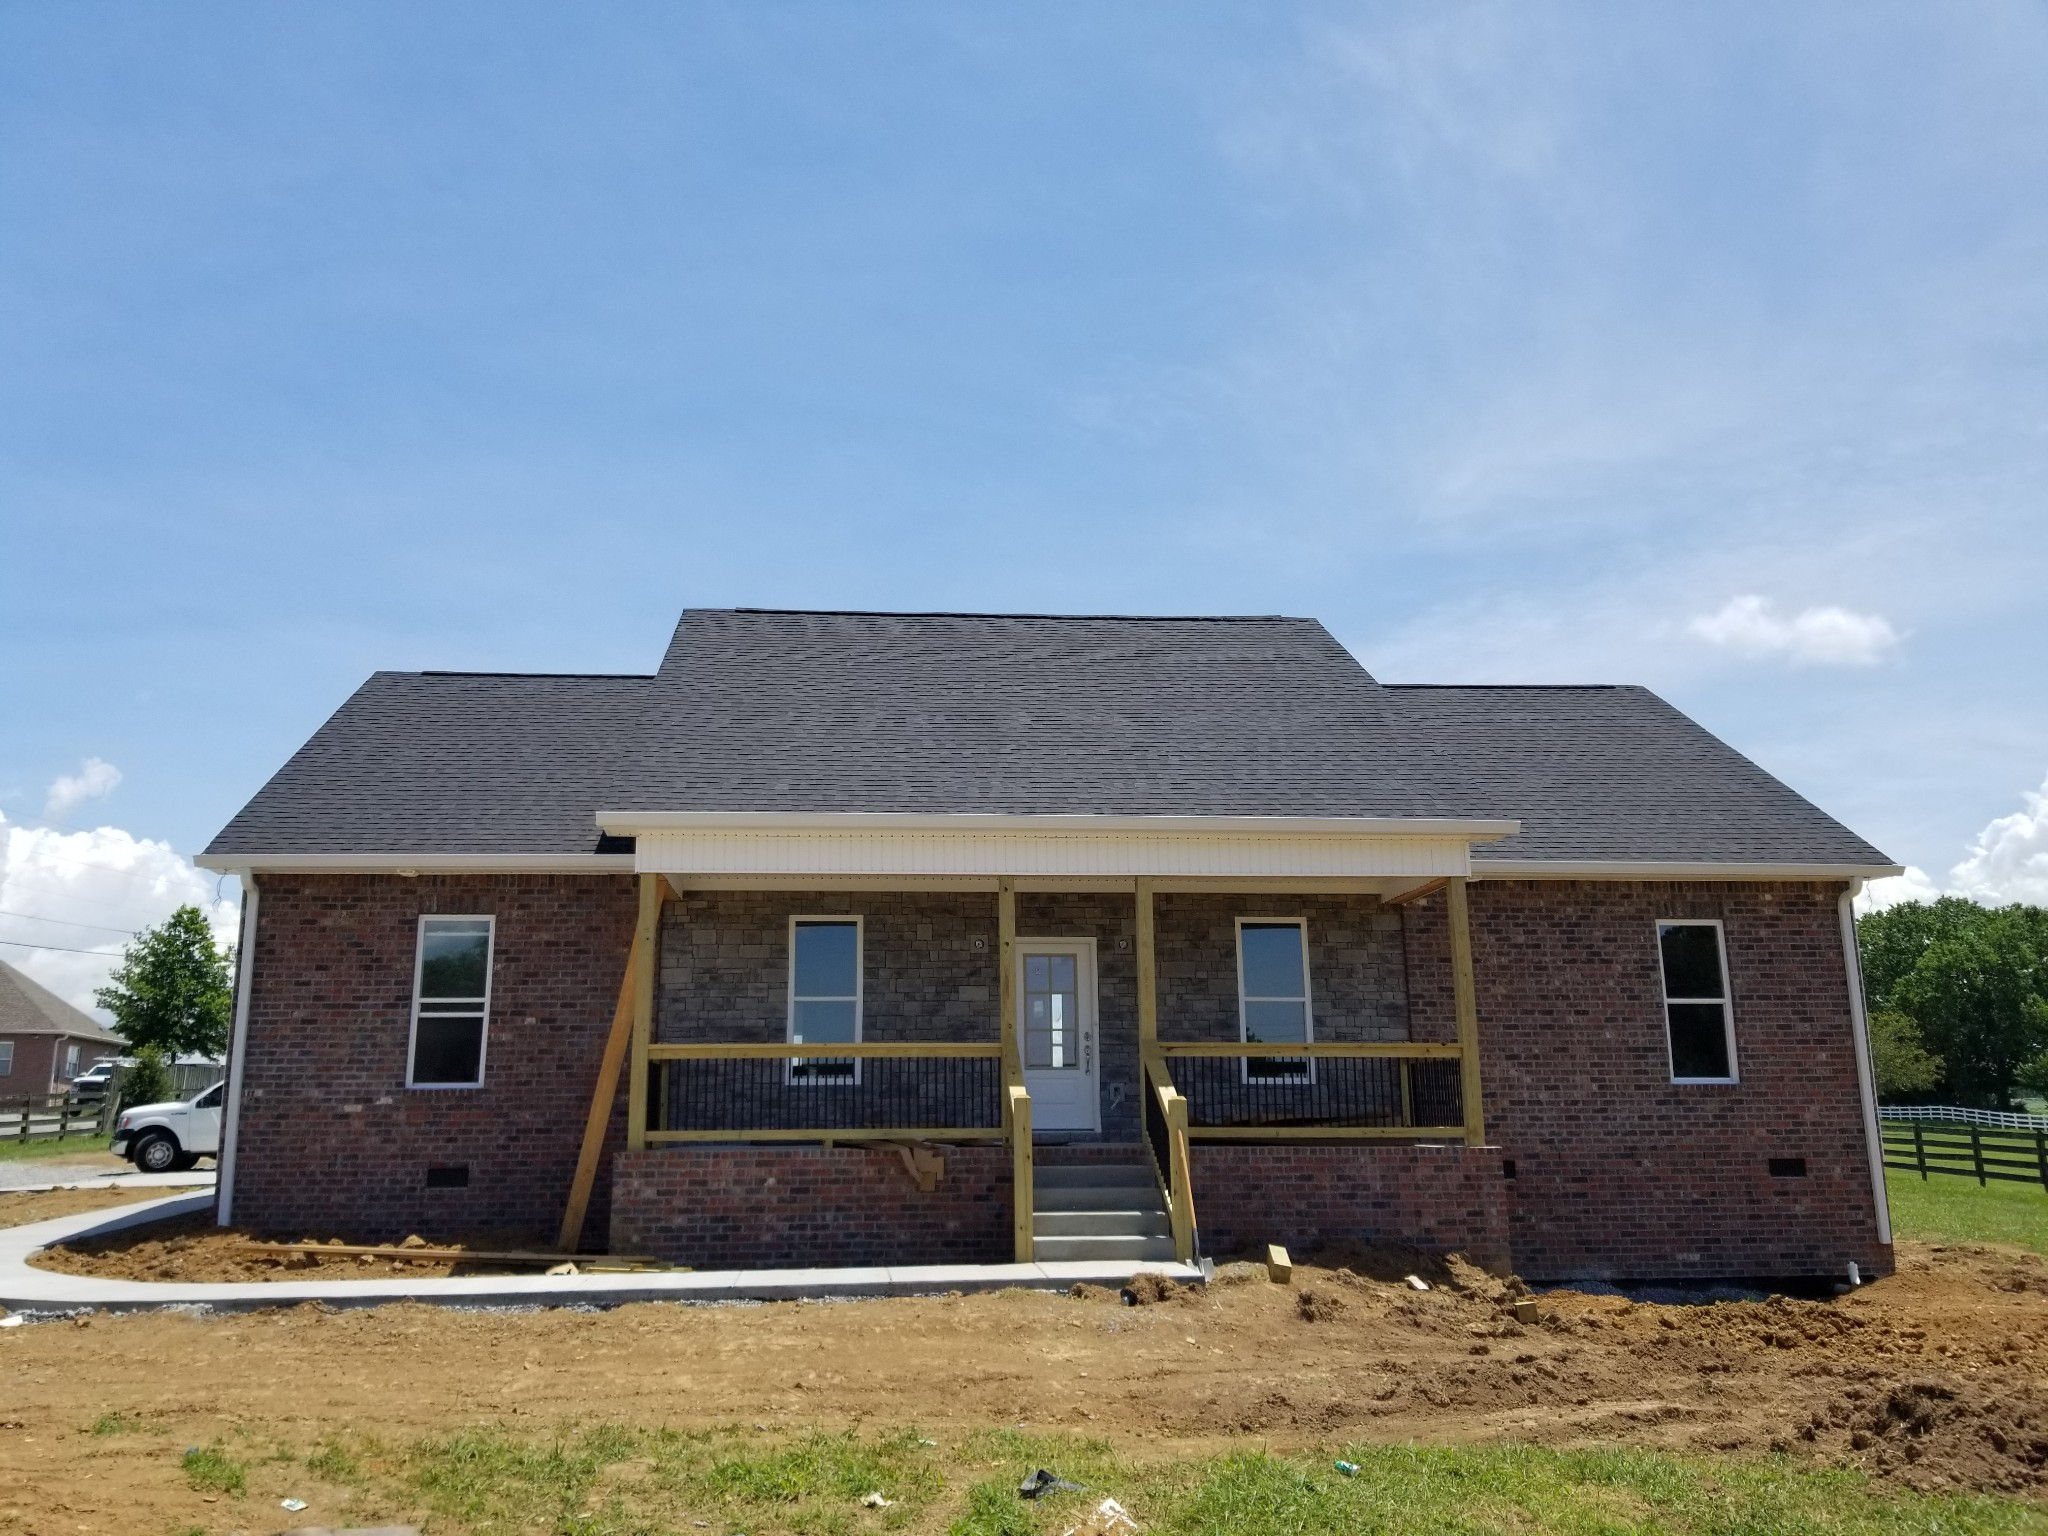 Brand New 4 BR/3 BA Home Situated On Nearly 2 Acre Lot!  782 Rock Springs Rd., Castalian Springs, TN.  37031